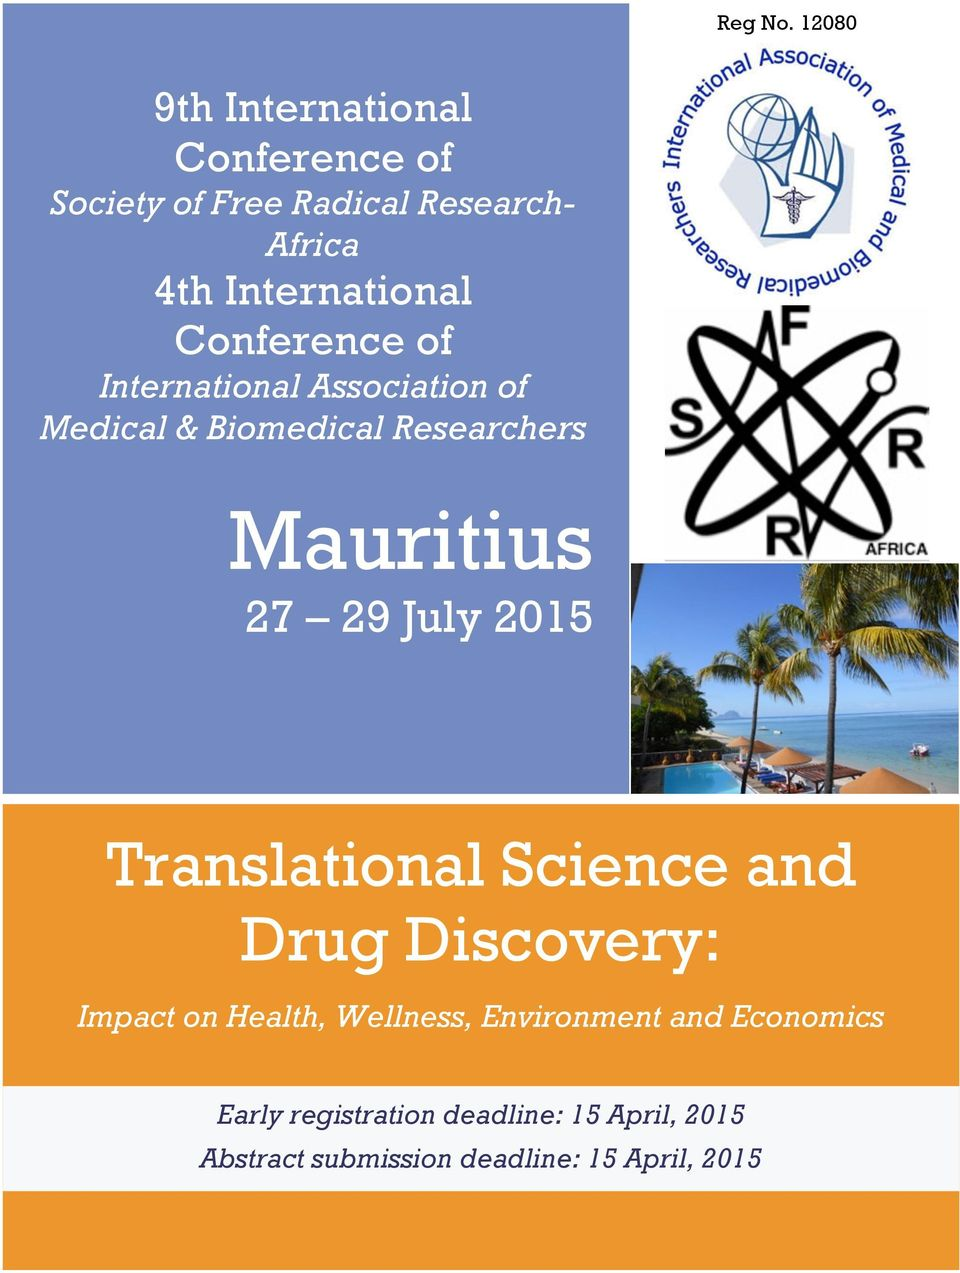 Conference of International Association of Medical & Biomedical Researchers Mauritius 27 29 July